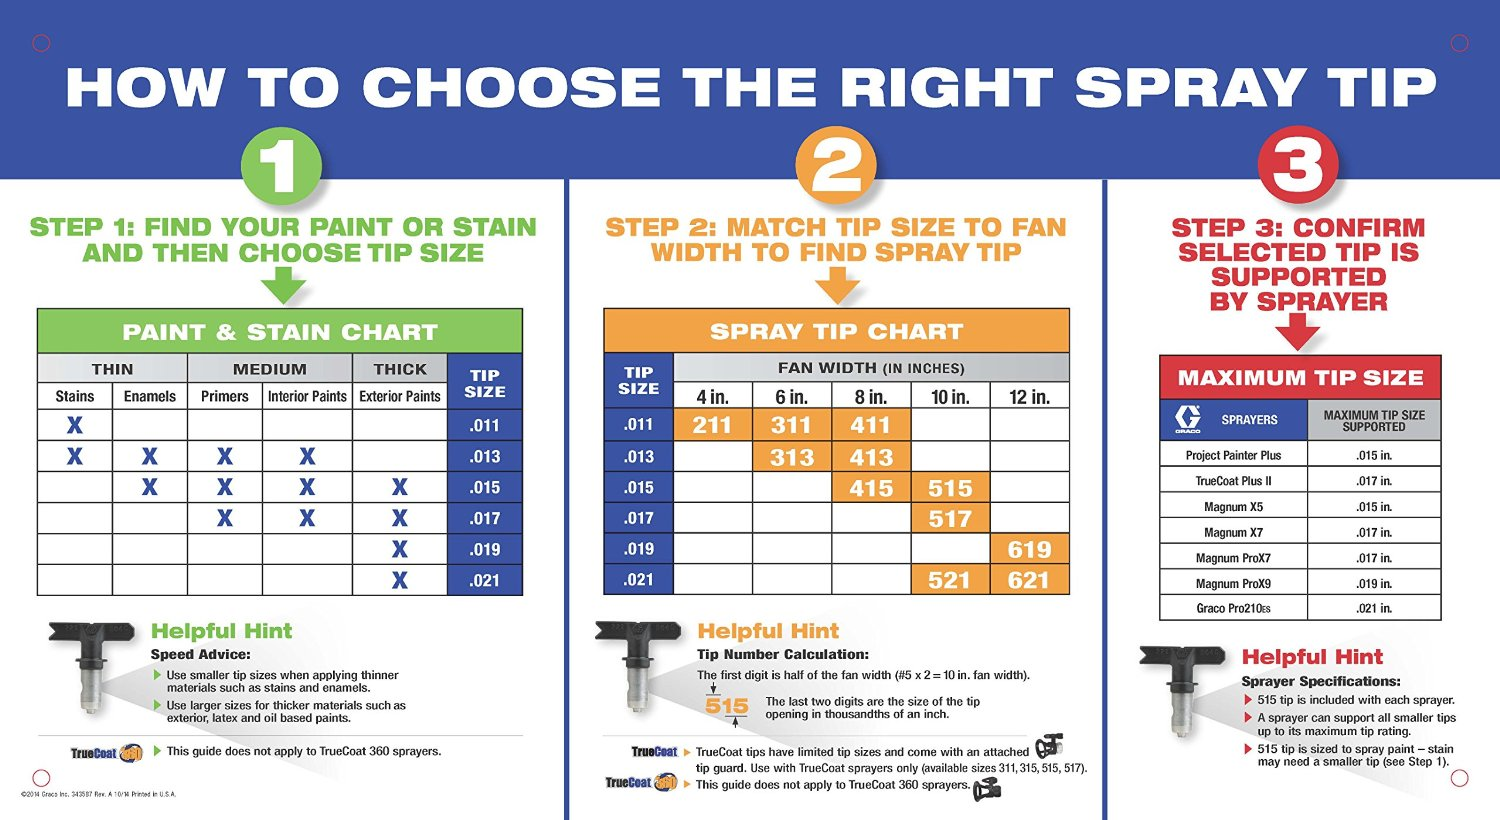 How to Choose The Right Spray Tip